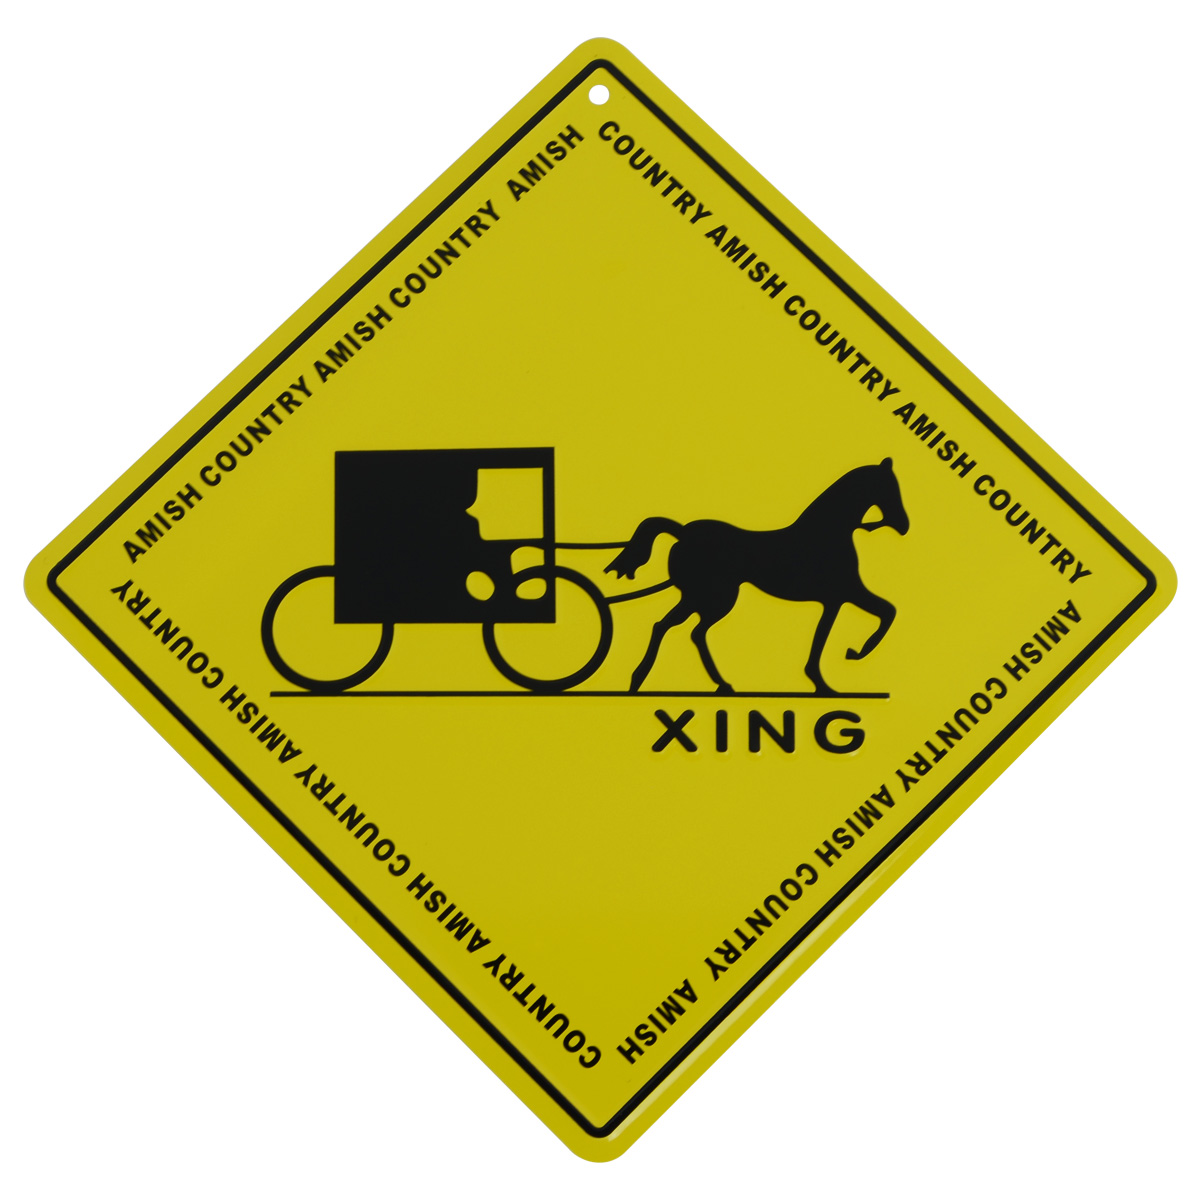 Metal Yellow Caution Warning Road/Street Sign AMISH CROSSING Country Decor Gift